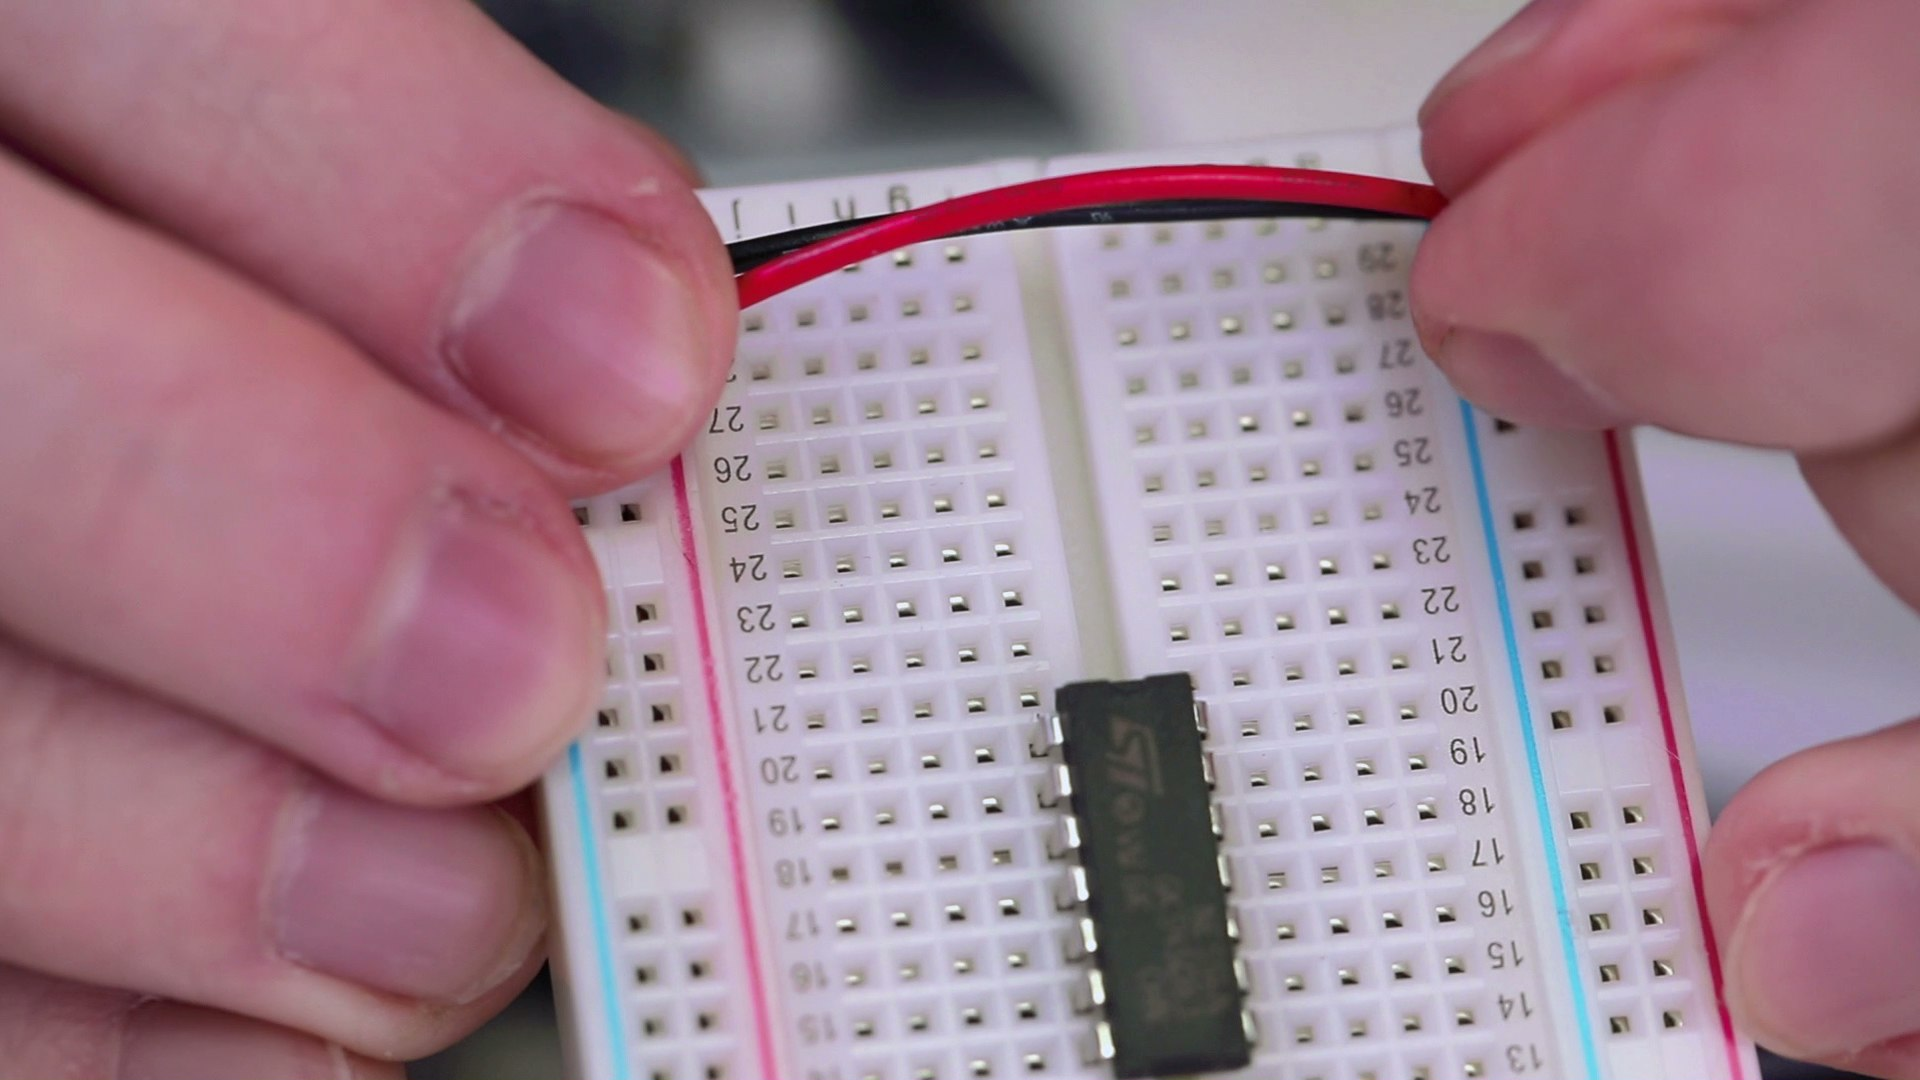 projects_Collin's_Lab_-_Breadboards___Perfboards-9.jpeg